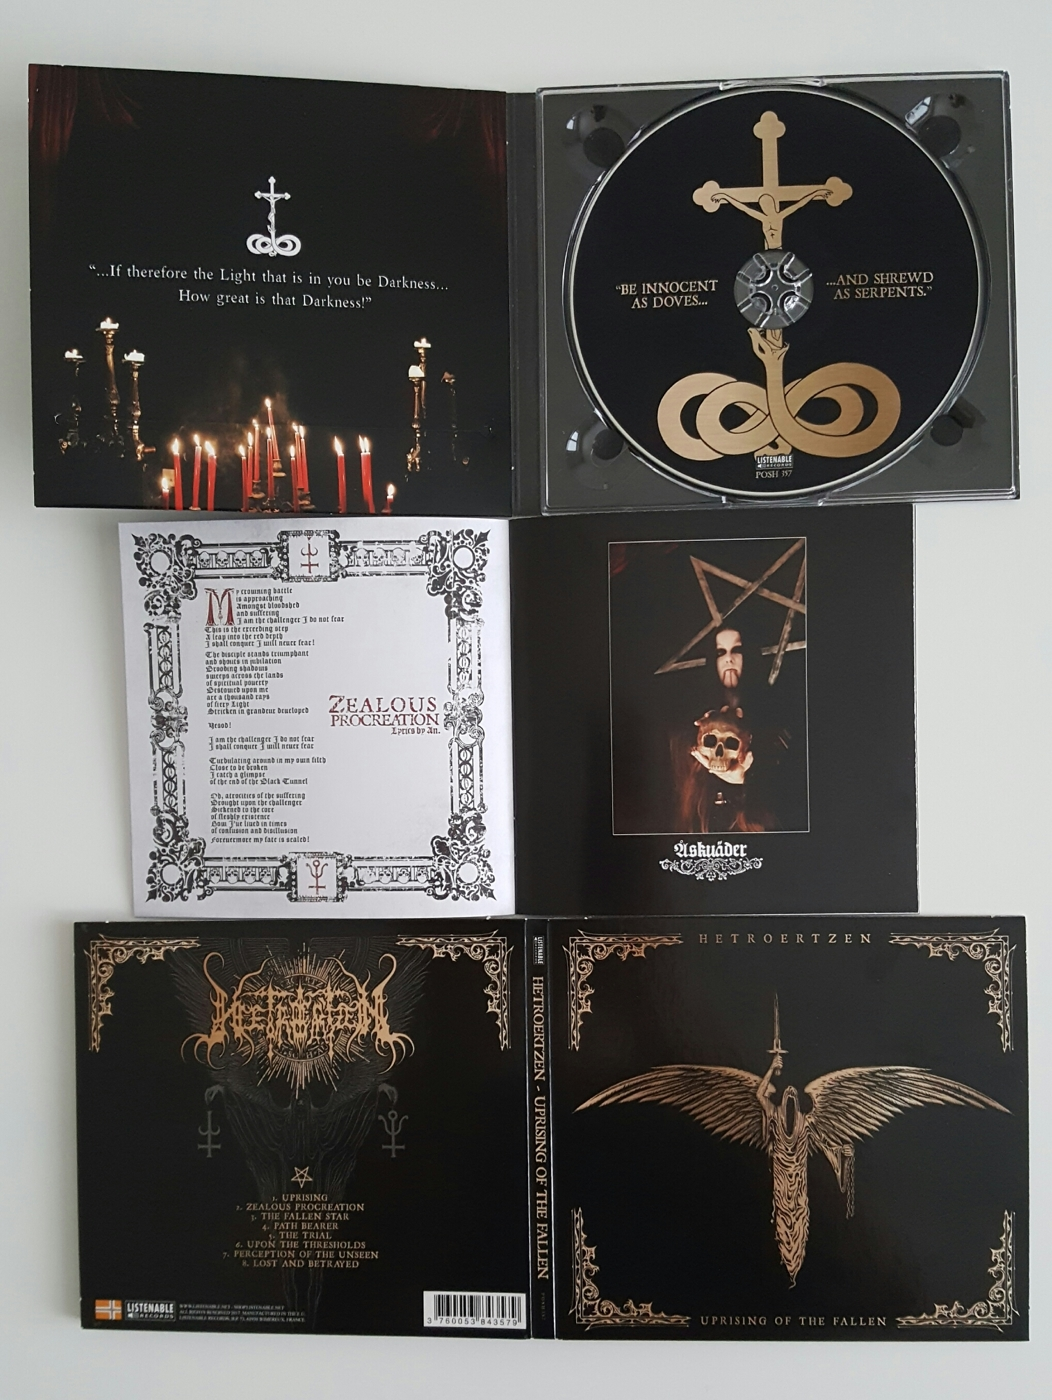 Uprising of the Fallen CD